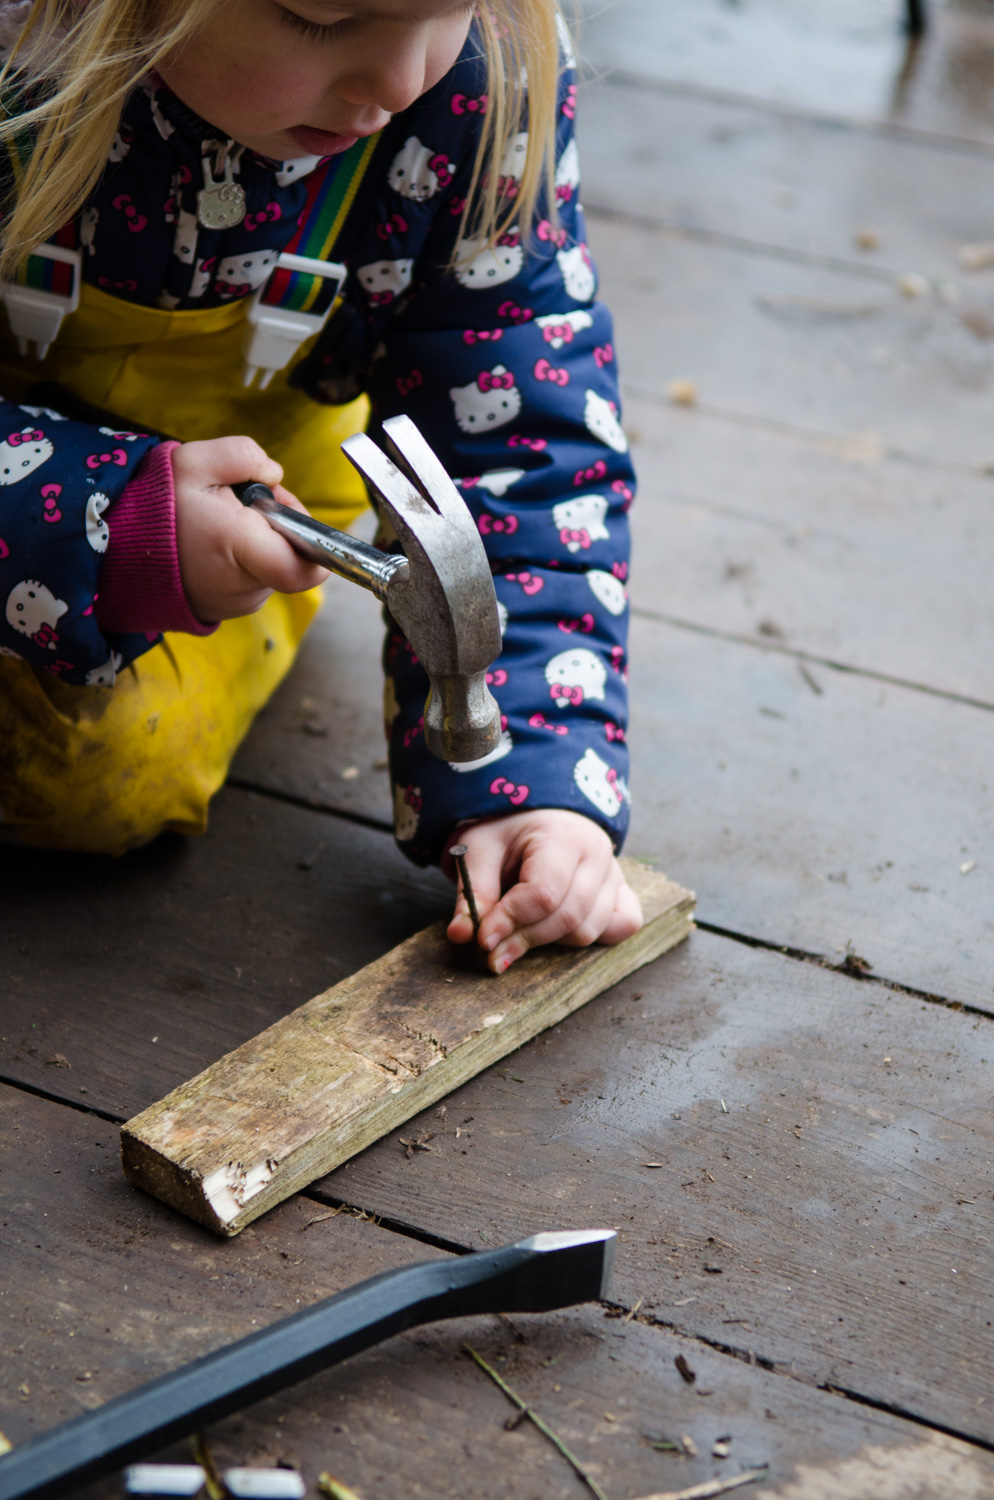 The learning that can occur when a child uses a tool is huge. Just being given a dangerous tool can boost confidence and self-esteem, especially when they can achieve or overcome.